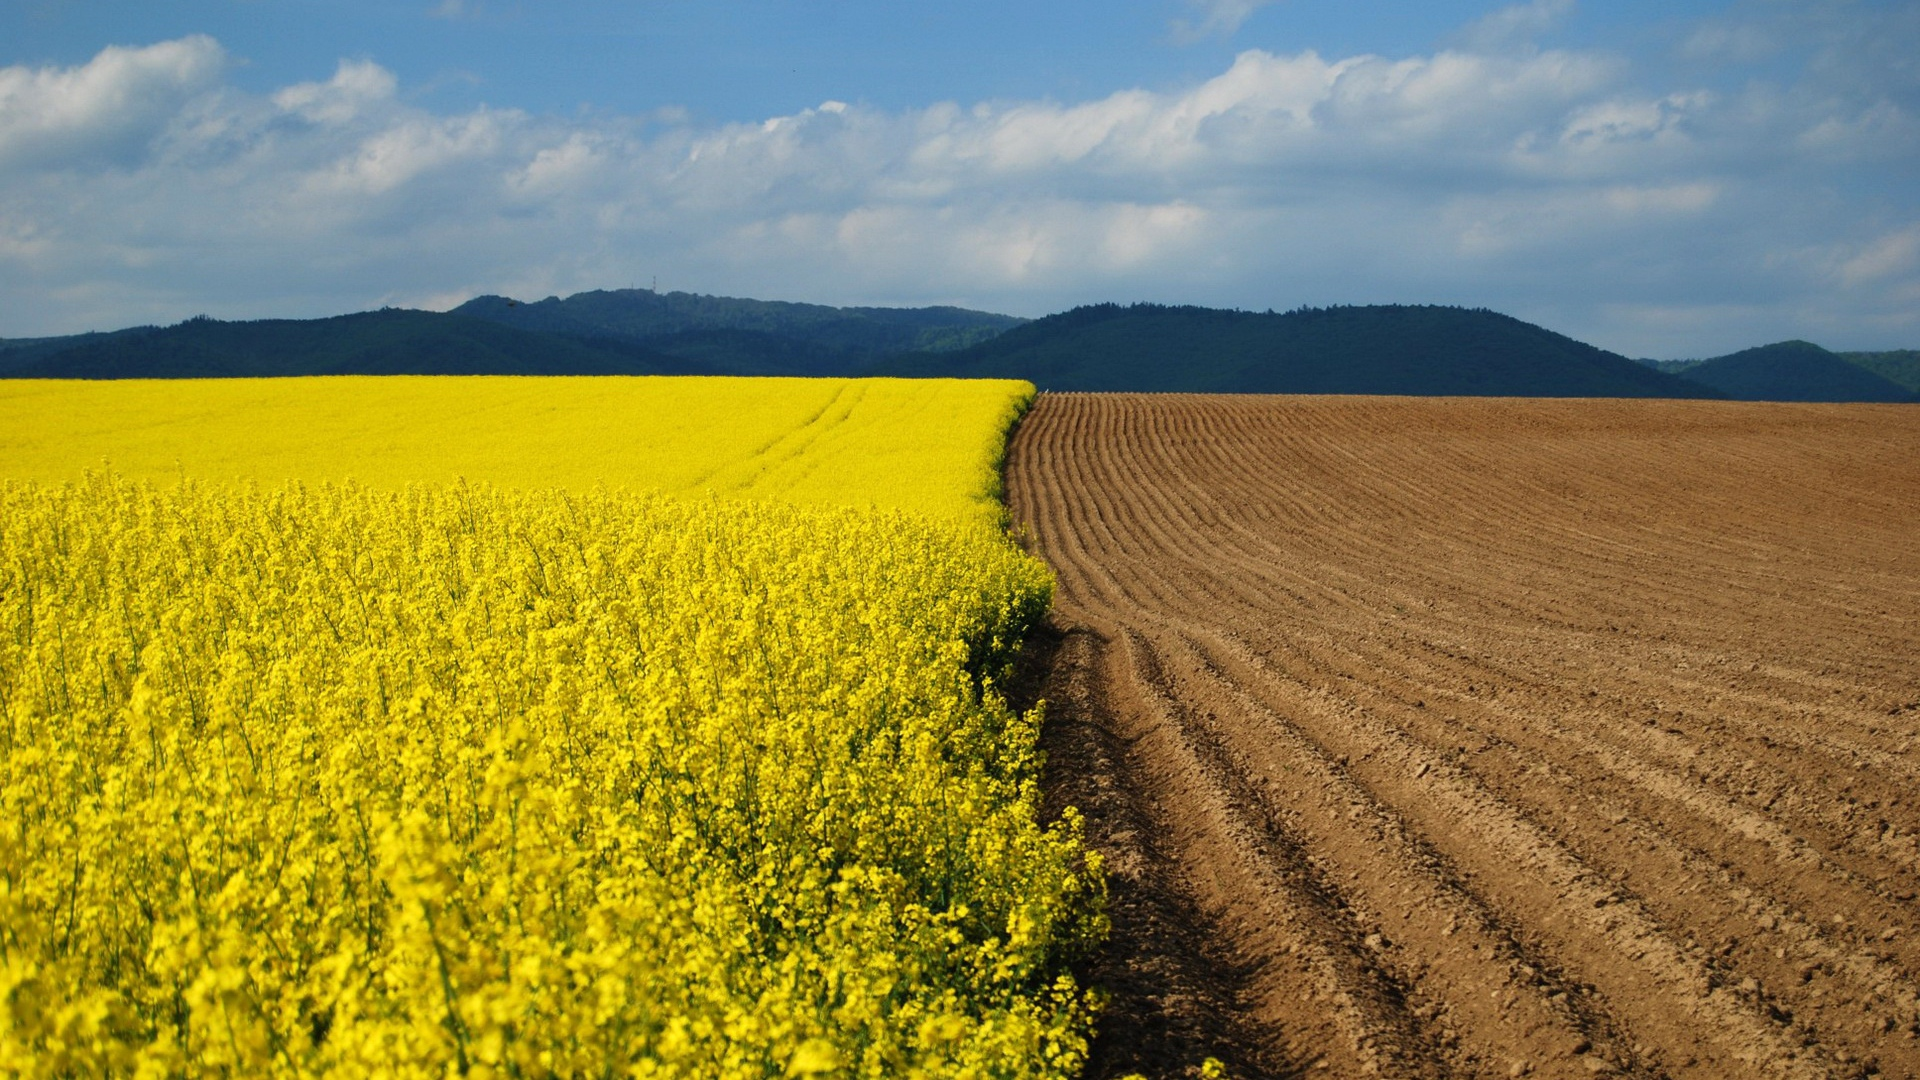 Download Wallpaper 1920x1080 arable land, earth, flowers ...